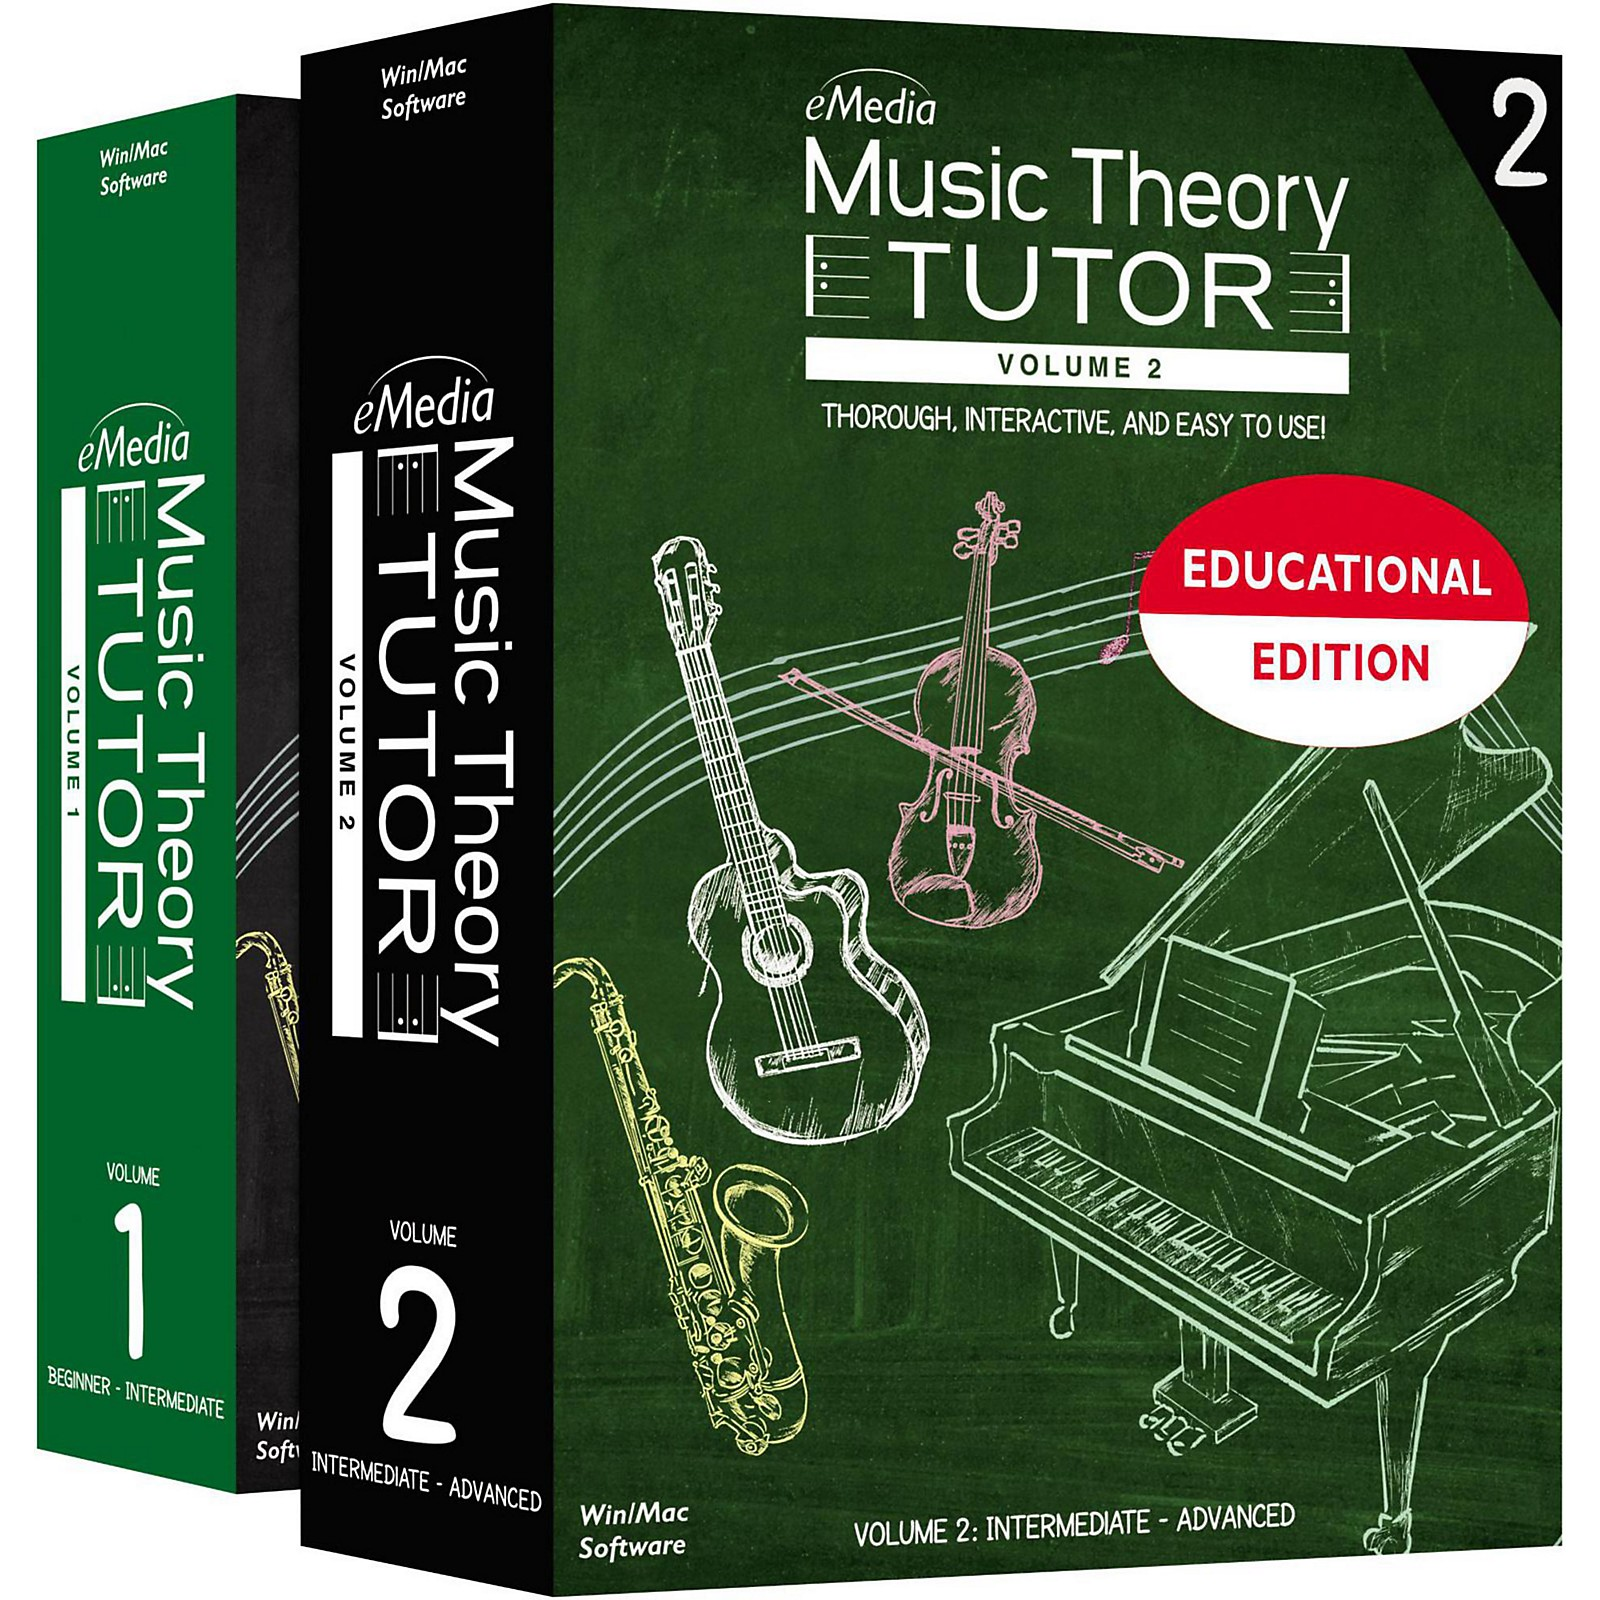 eMedia Music Theory Tutor Teacher/Student Academic Edition